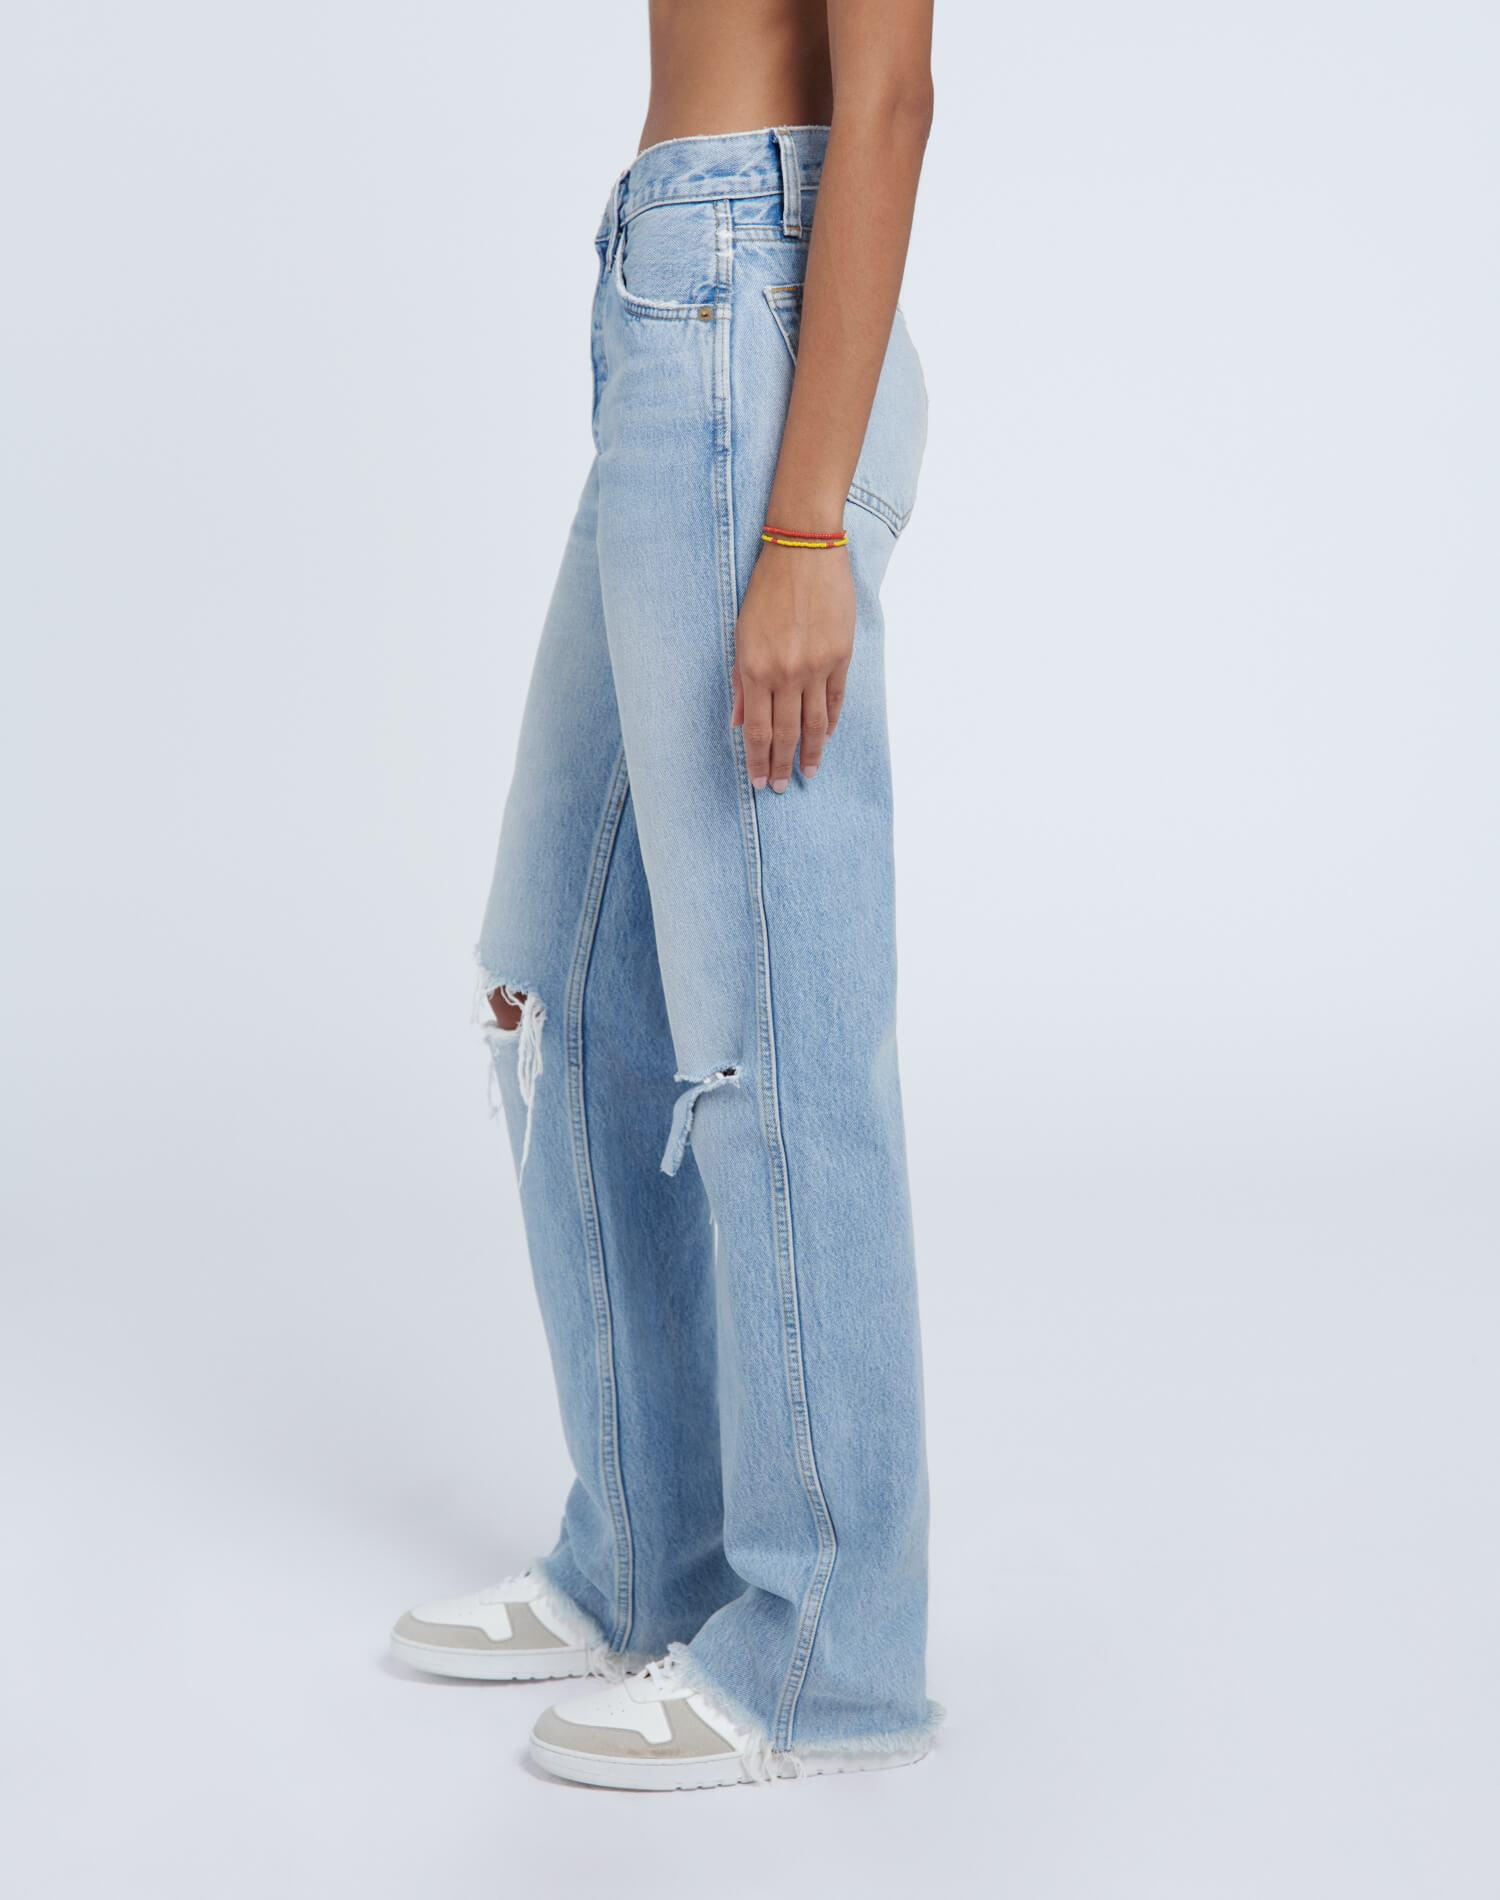 High Rise Loose - Breezy Indigo with Rips 2